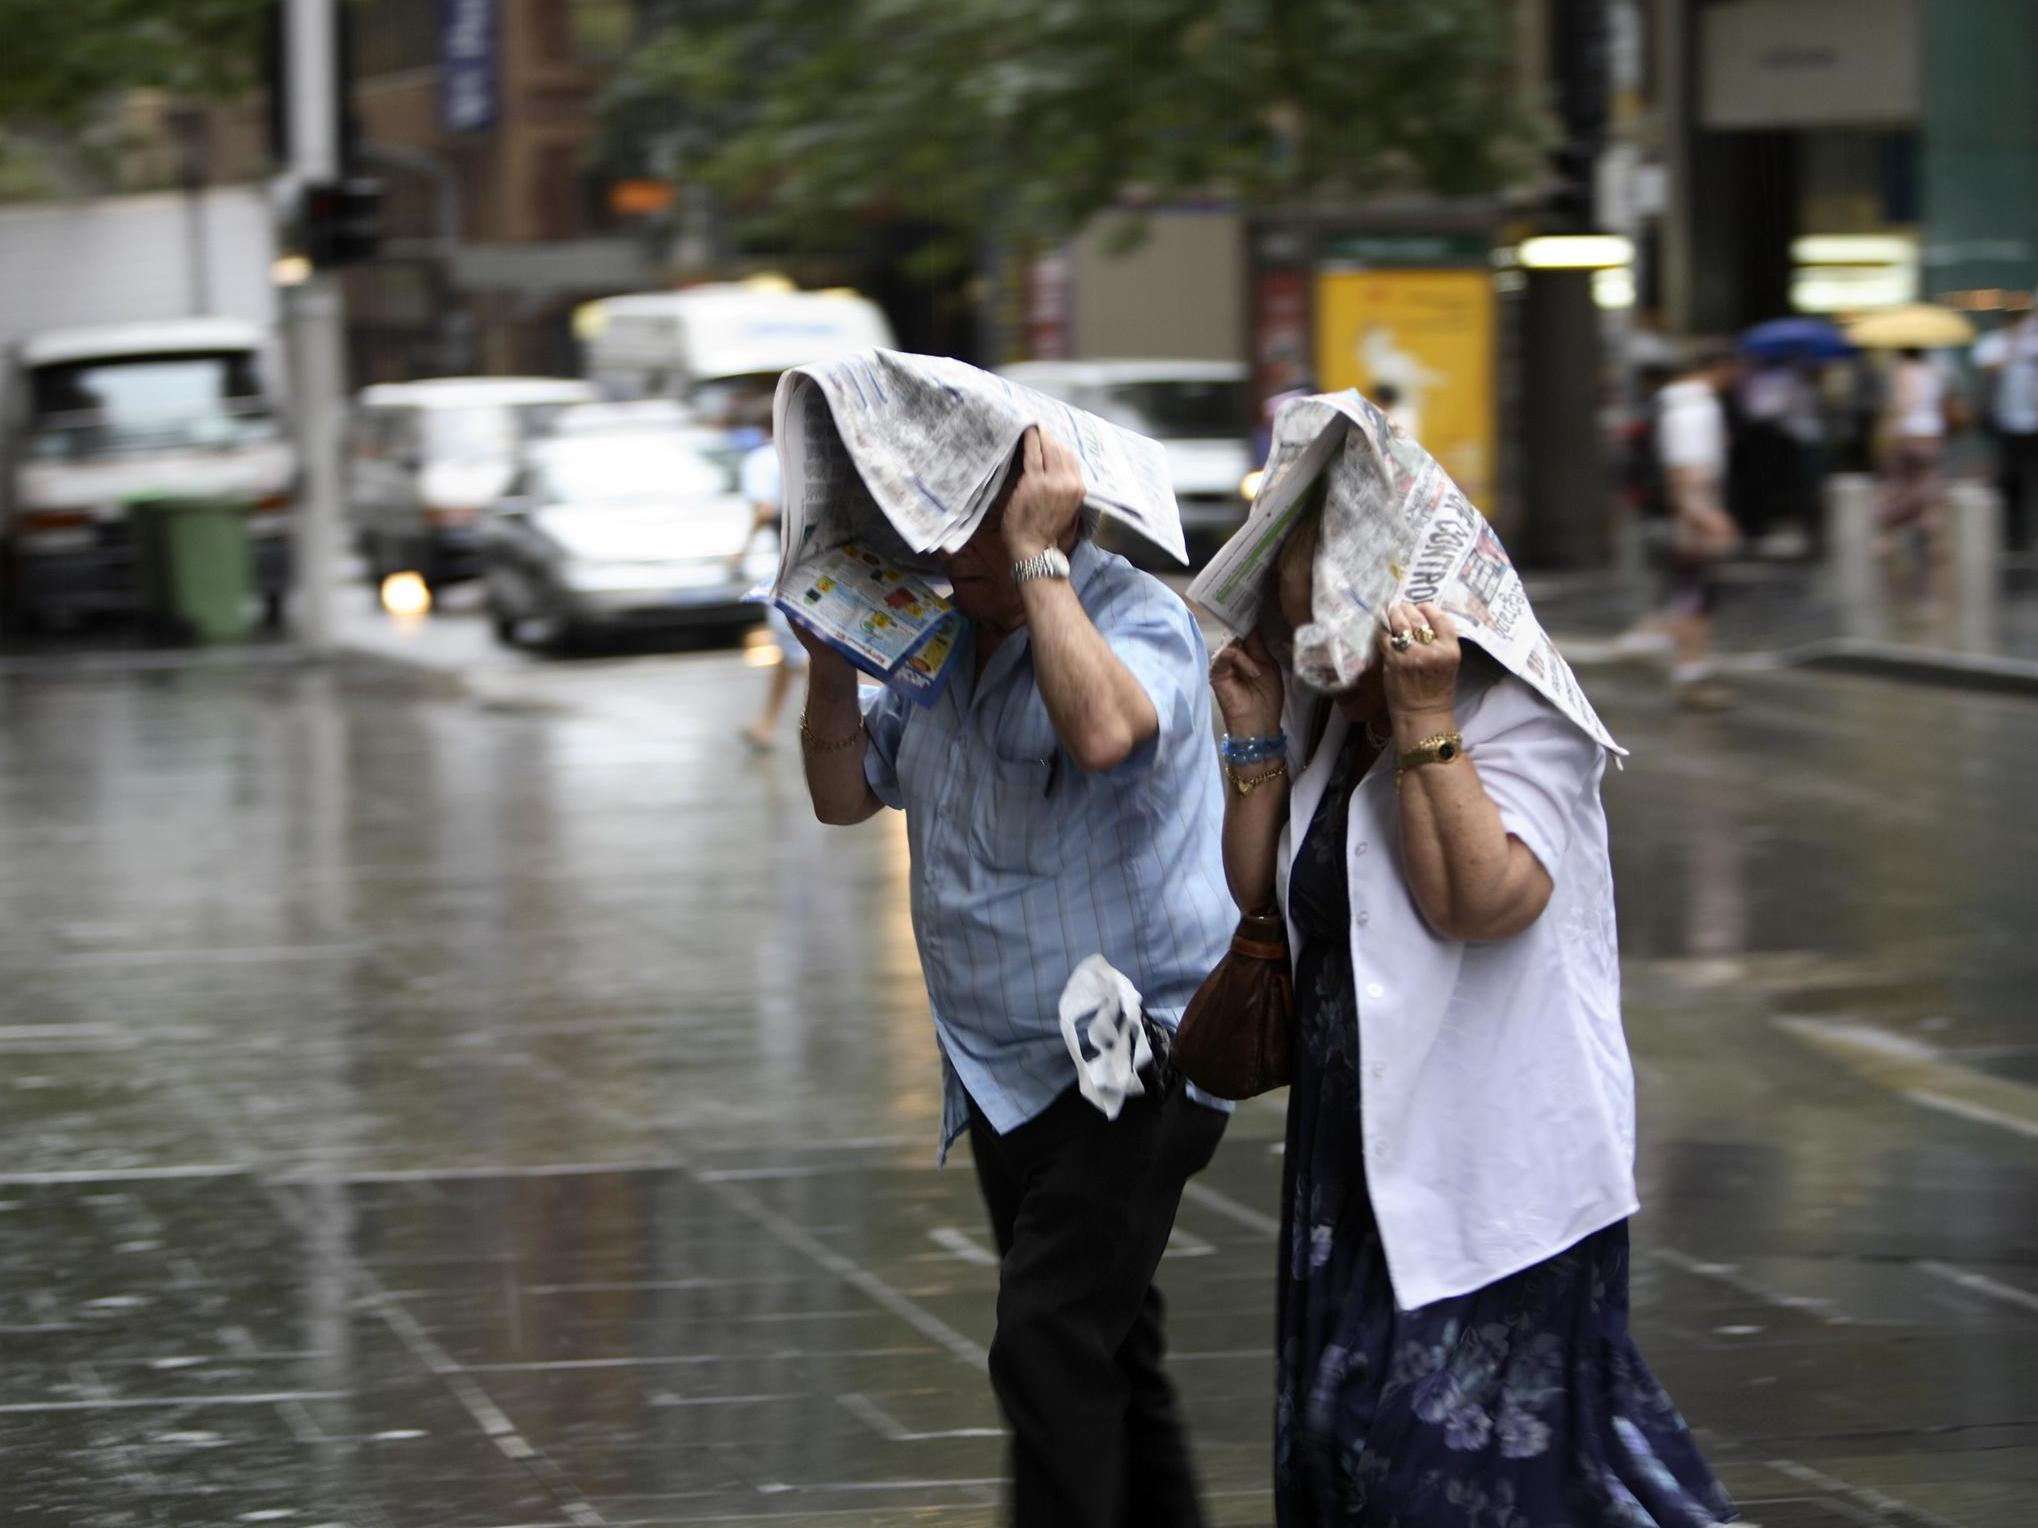 UK weather forecast: More than two inches of rain expected to fall as severe warnings issued for England